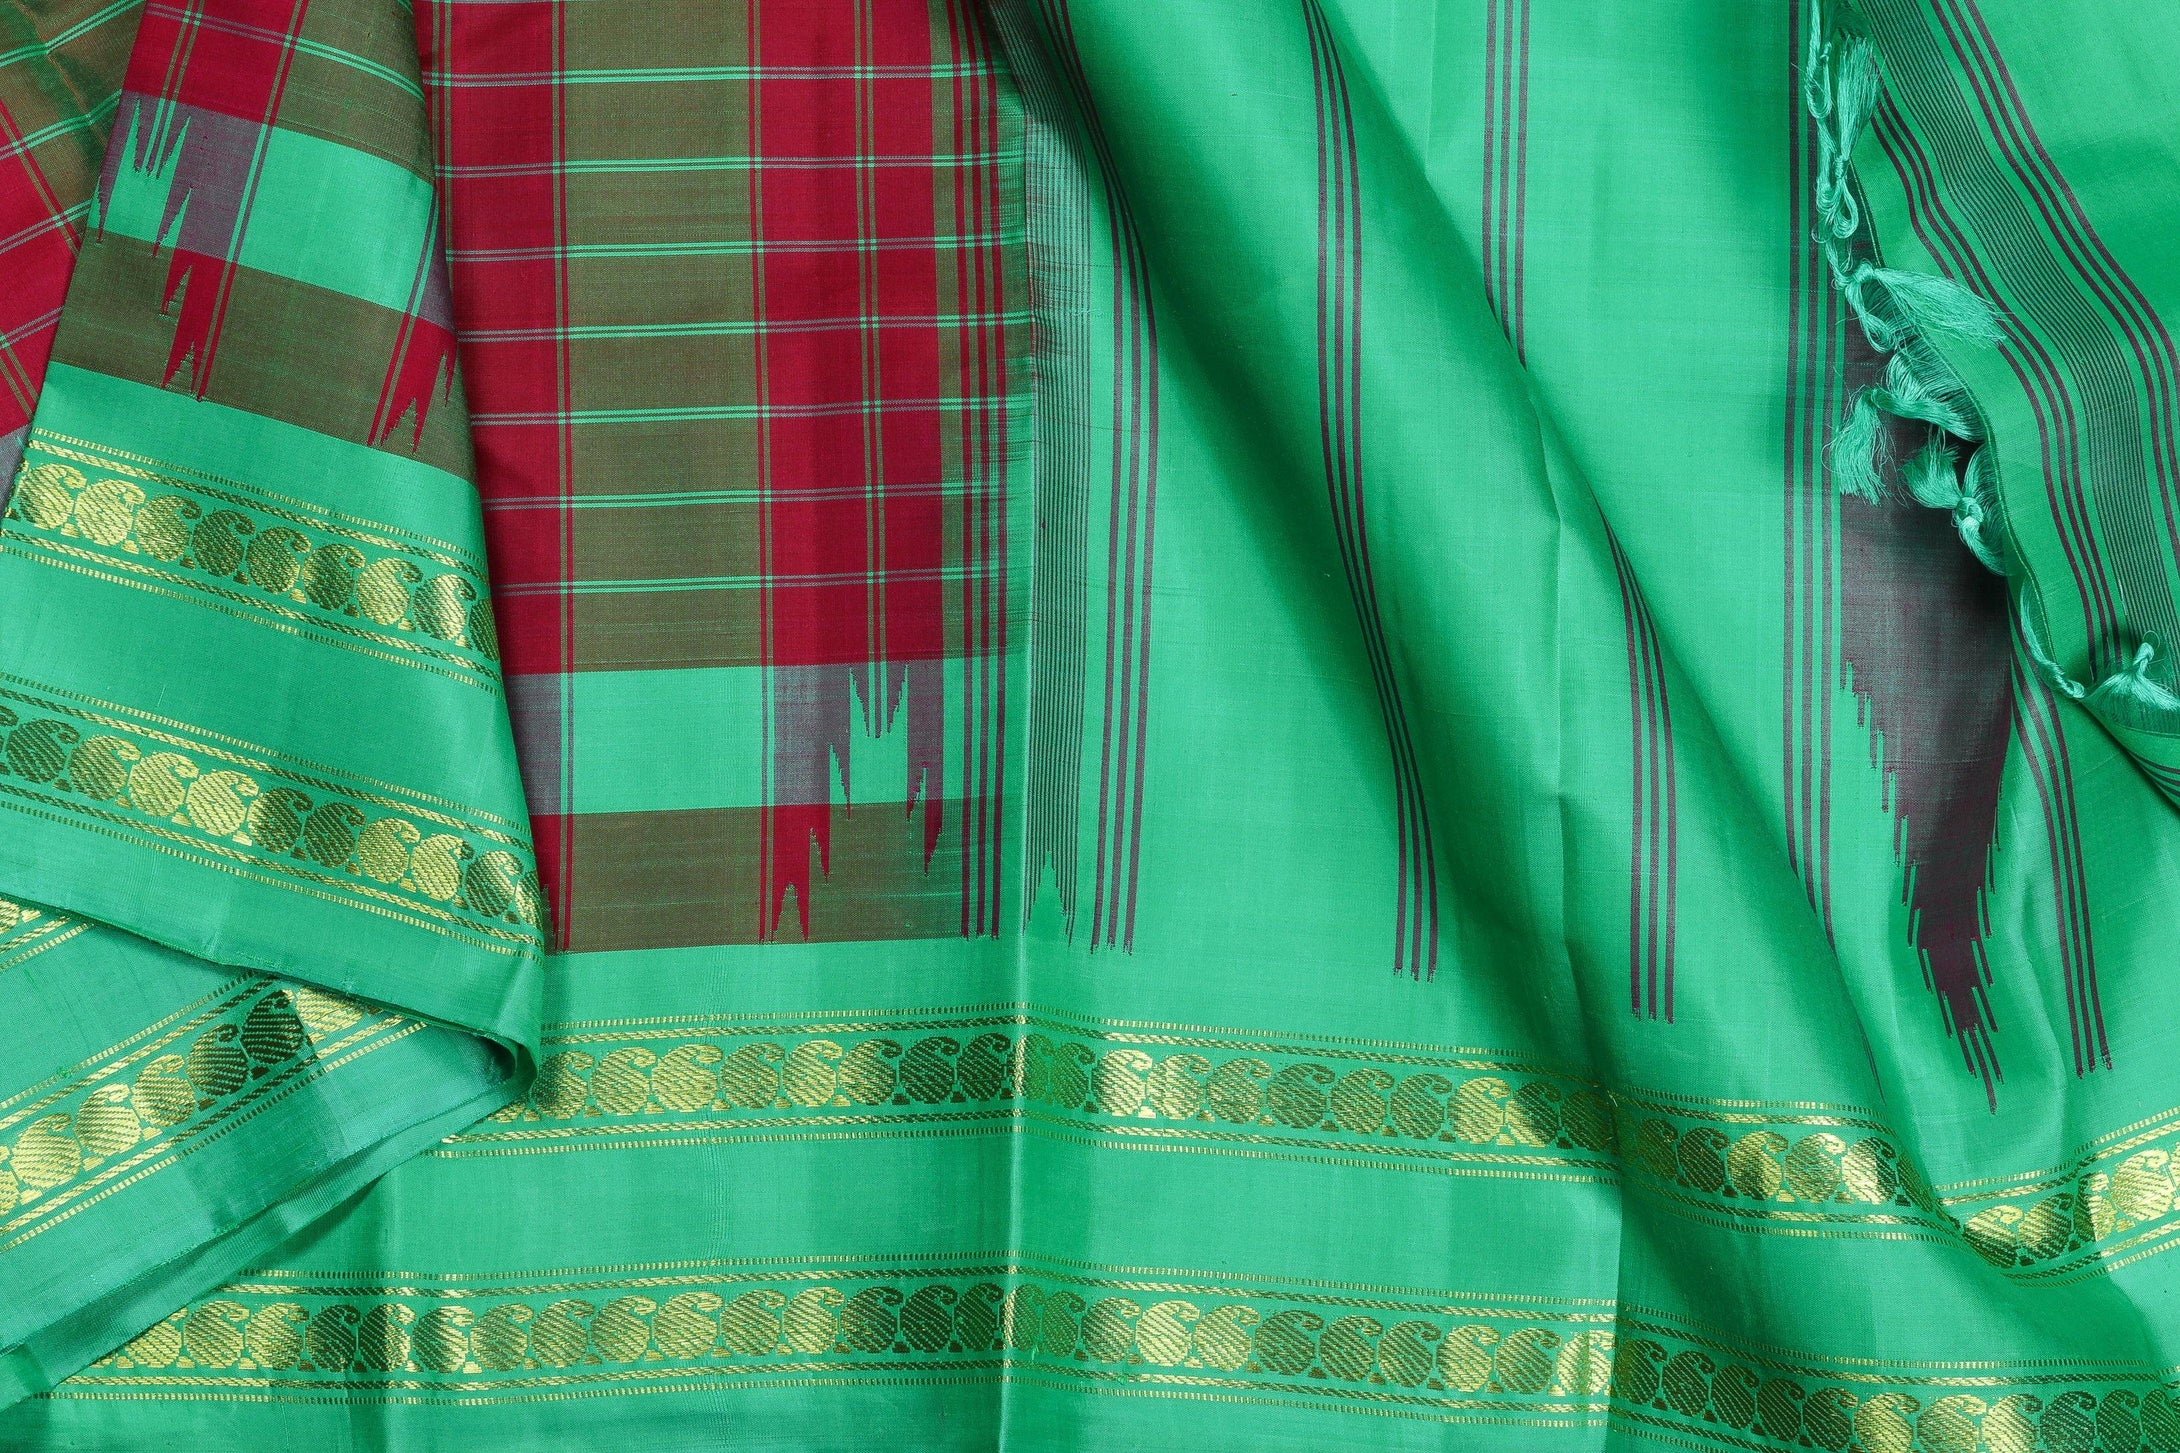 Temple Border Handwoven Kanjivaram Pure Silk Saree - Self Checks - PVA 0418 1212 Archives